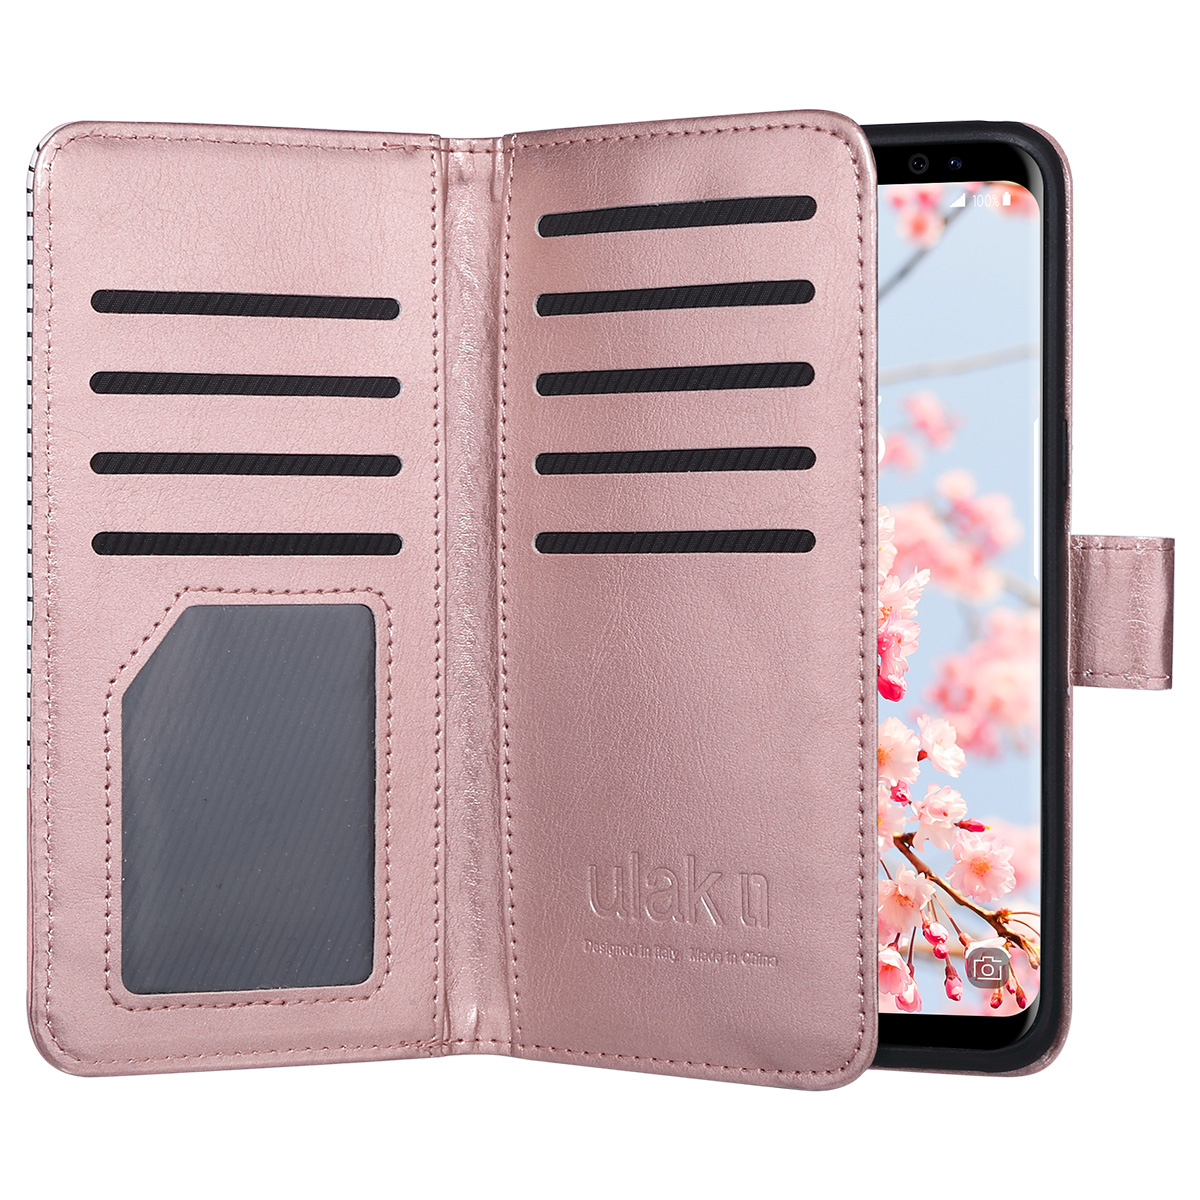 Galaxy S8 Case, ULAK Magnetic Premium PU Leather Wallet Case Flip Cover with Built-in 9 Slots and Wrist Strap for Samsung Galaxy S8 2017 Release